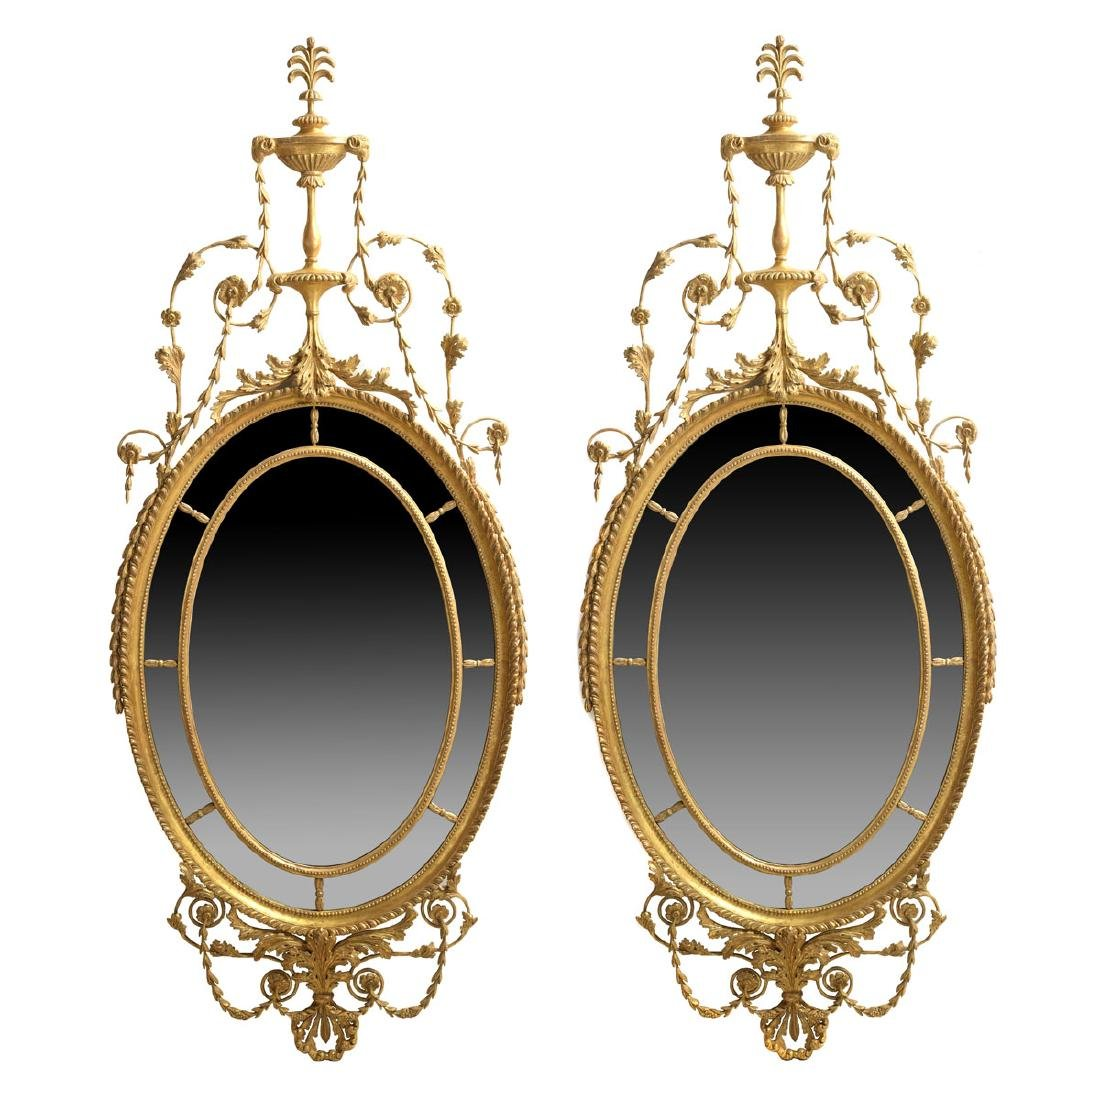 Exceptional Pair of George III Oval Mirrors in the